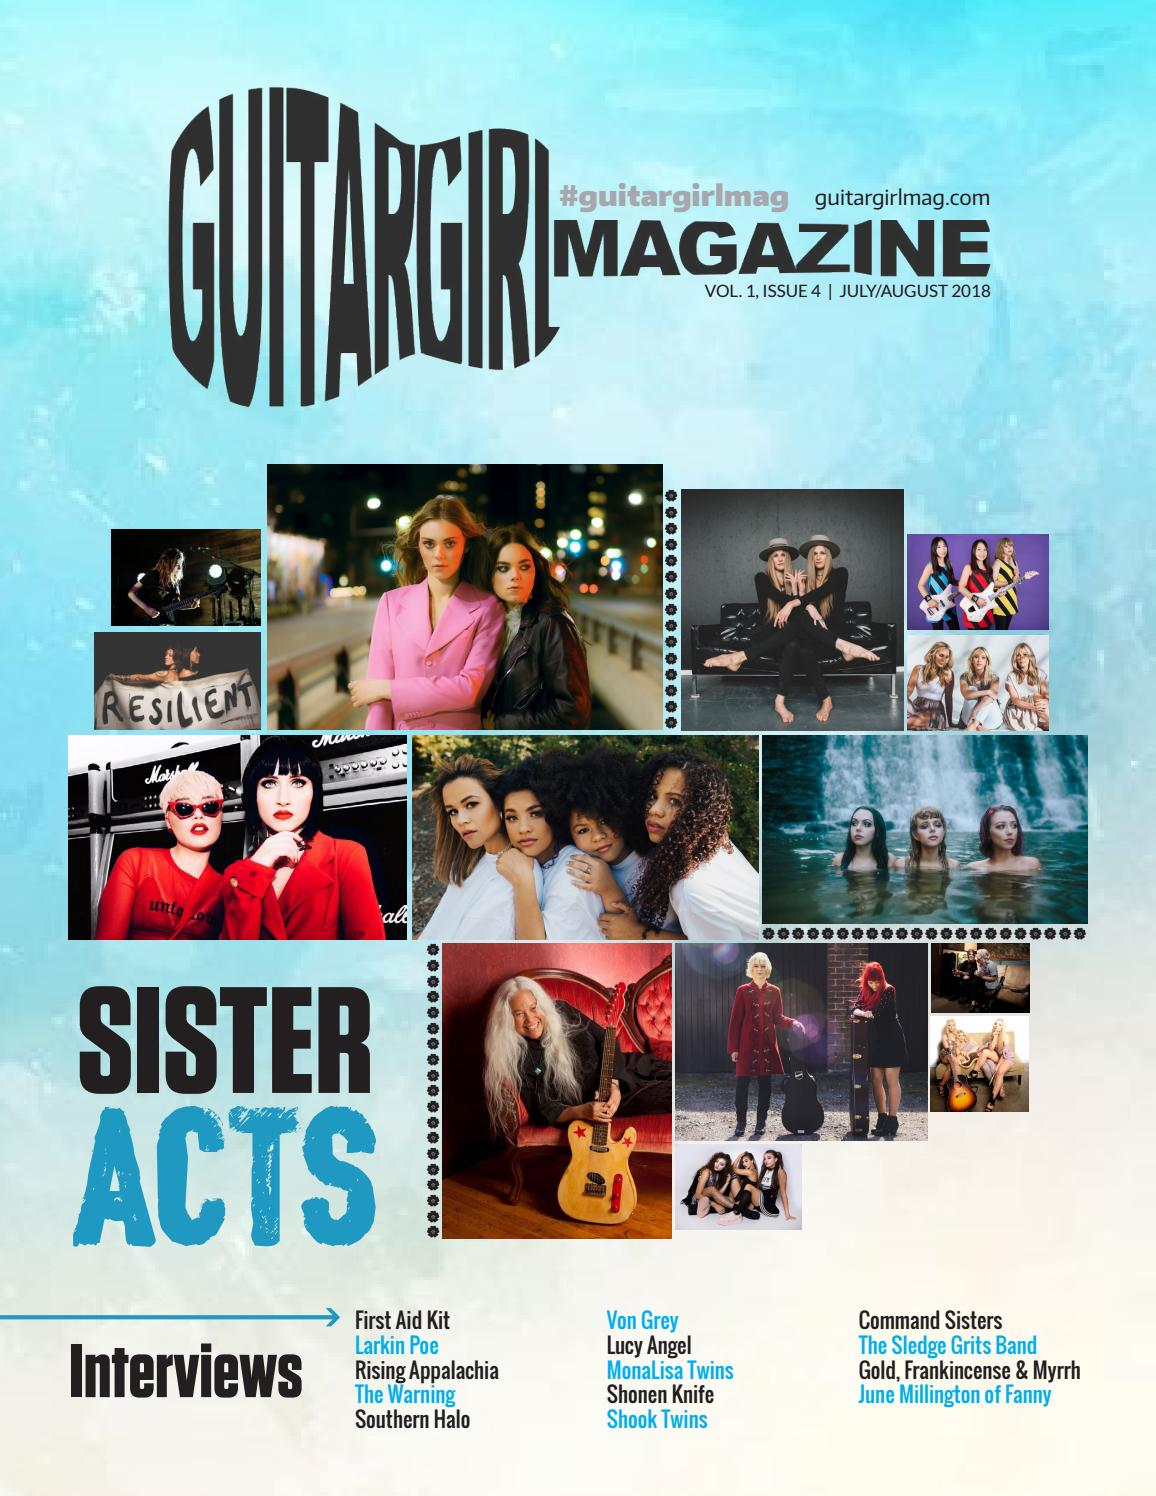 Guitar Girl Magazine - Sister Acts - Vol  1, Issue 4 by Tara Low - issuu